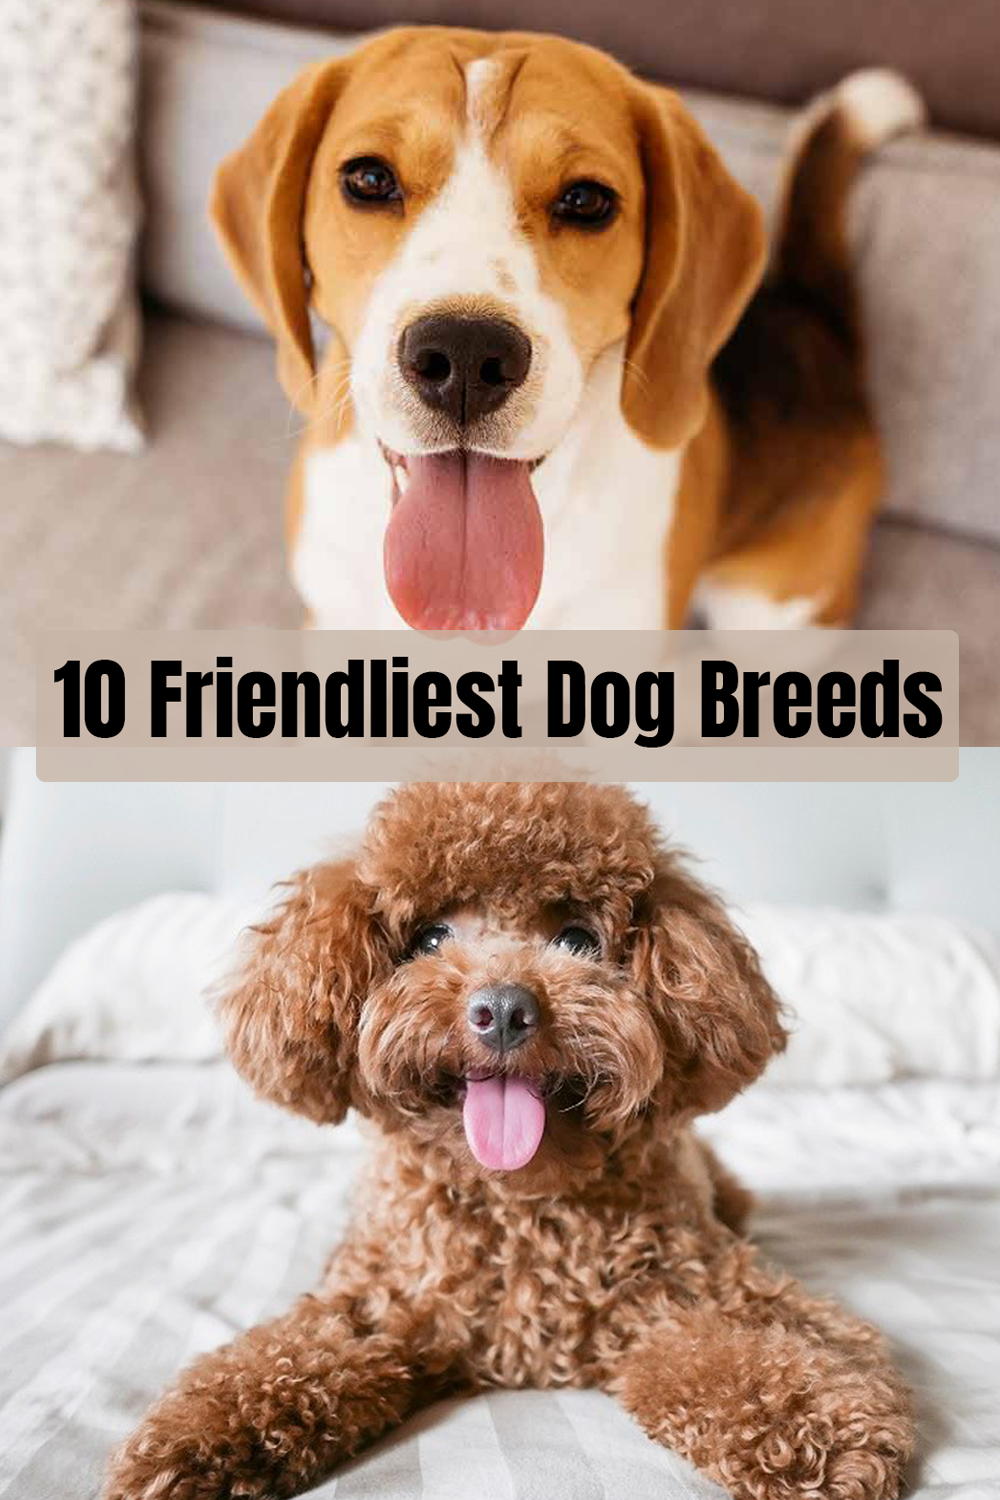 10 Friendliest Dog Breeds Friendly Dog Breeds Child Friendly